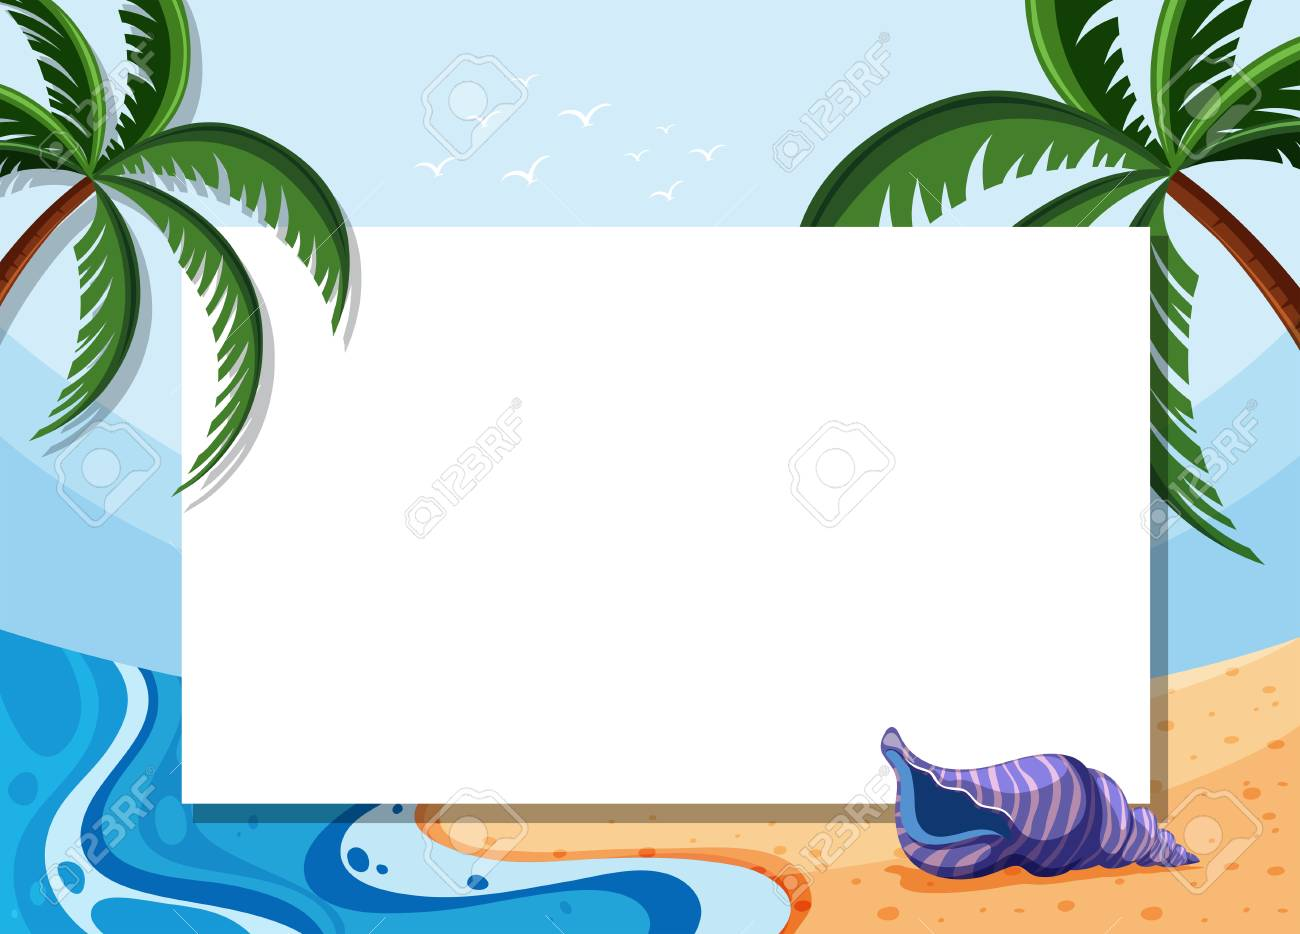 Border template with coconut trees and shell on beach illustration..